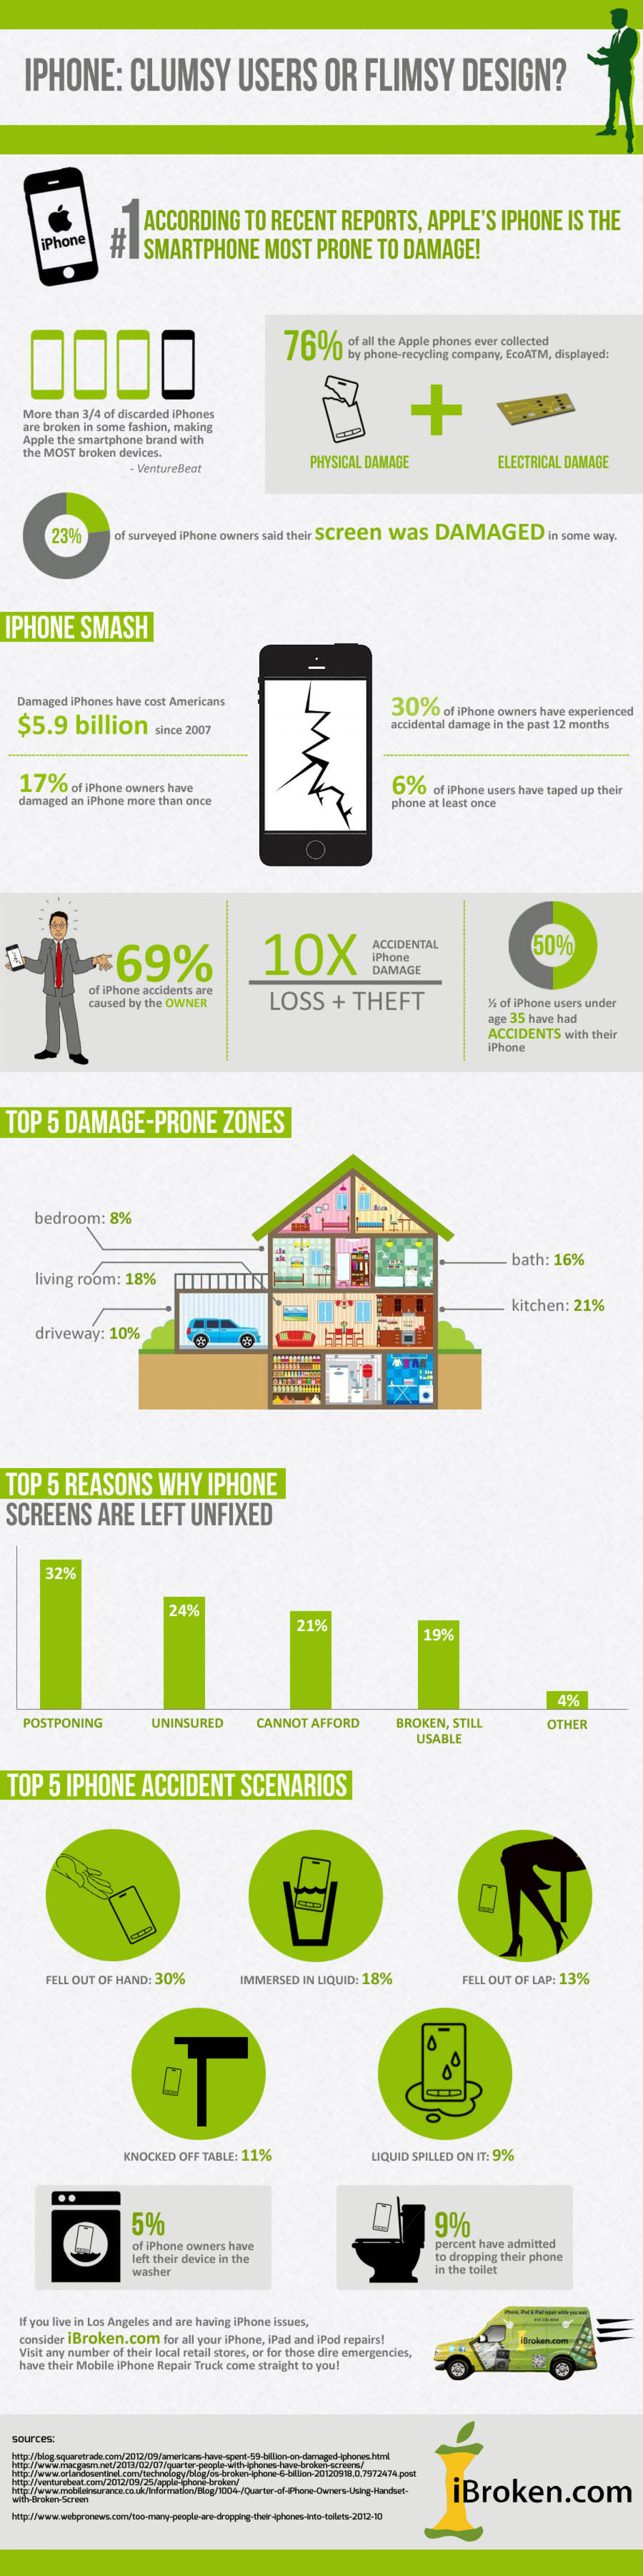 iPhone: Clumsy Users or Flimsy Design? Infographic